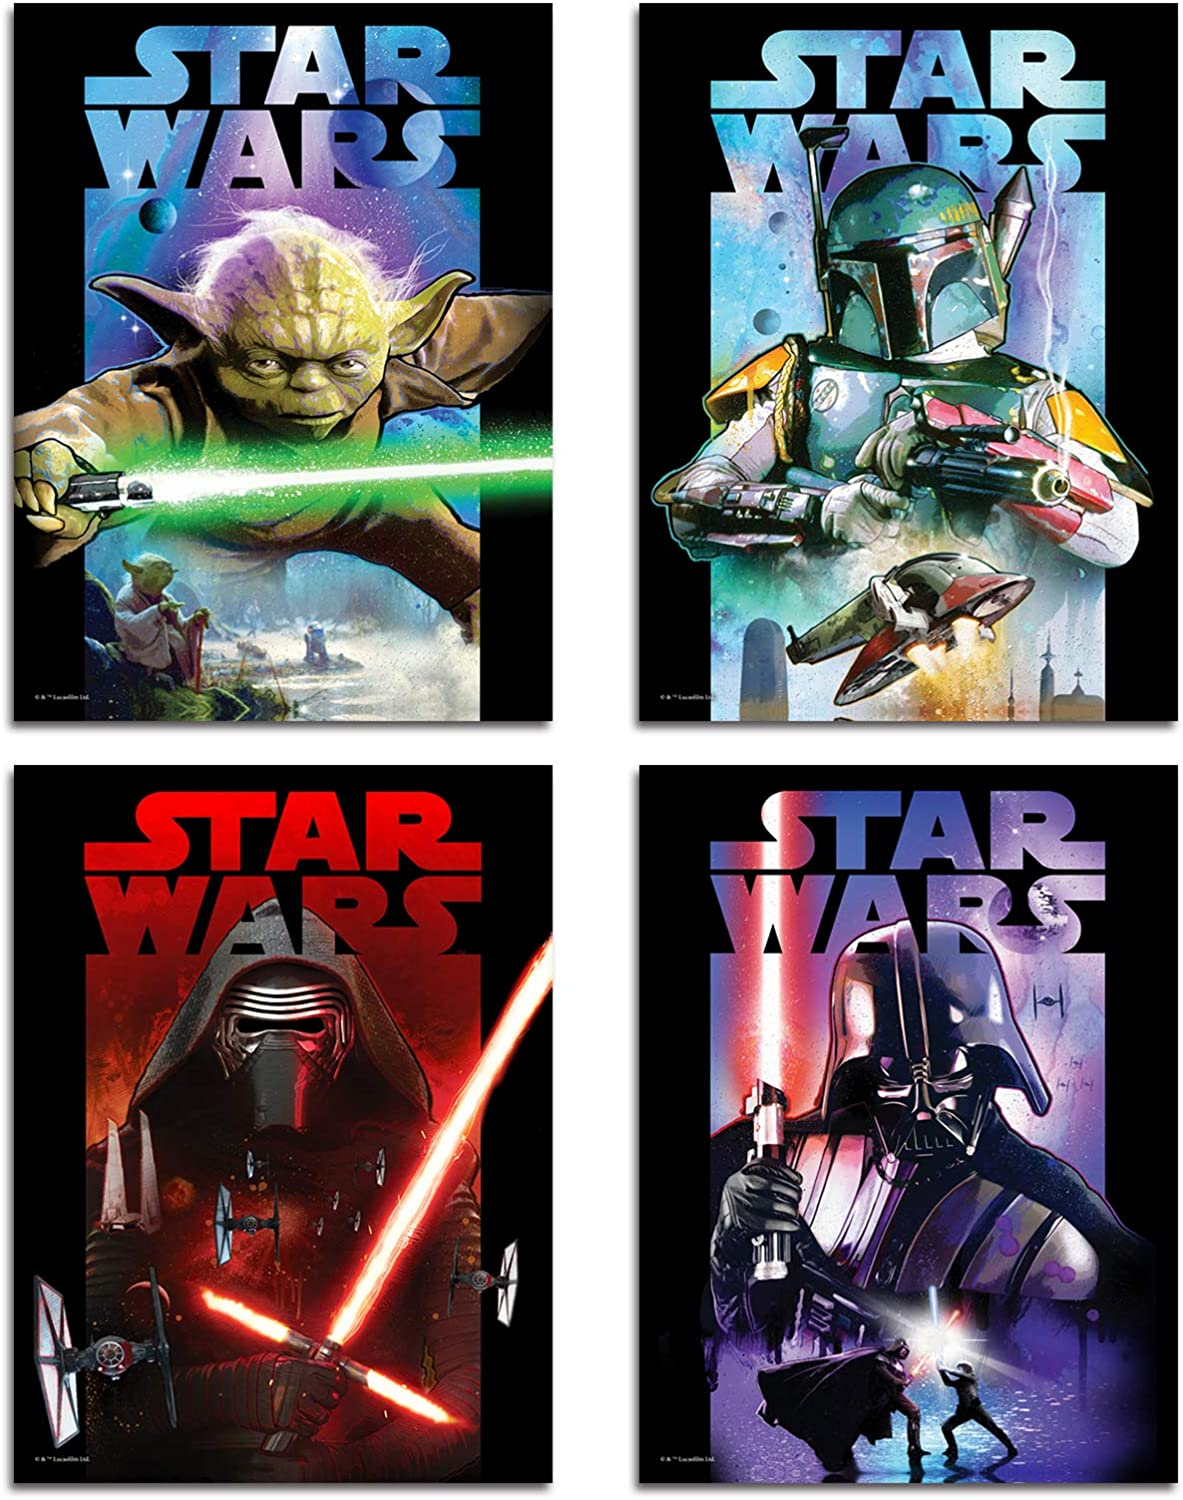 DAJIDALI Wall Art Prints, Star Wars Poster Watercolor Pictures Set of 4, Gift for Movies Fans, Mandalorian Yoda Home Decor for Living Room, Bedroom, Dorms, Office - 8x12 in, No Frame